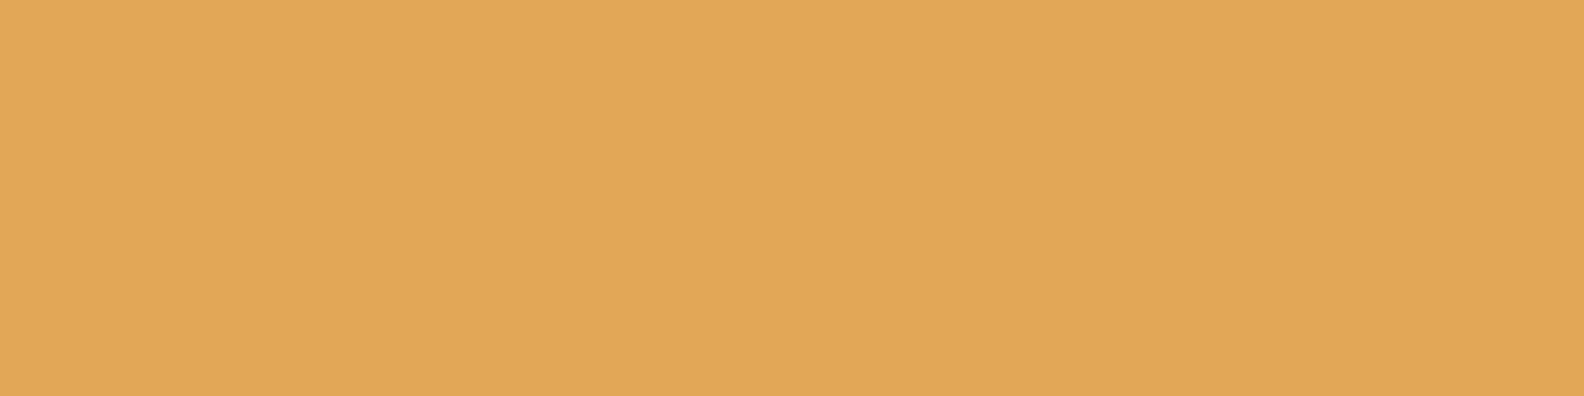 1584x396 Indian Yellow Solid Color Background